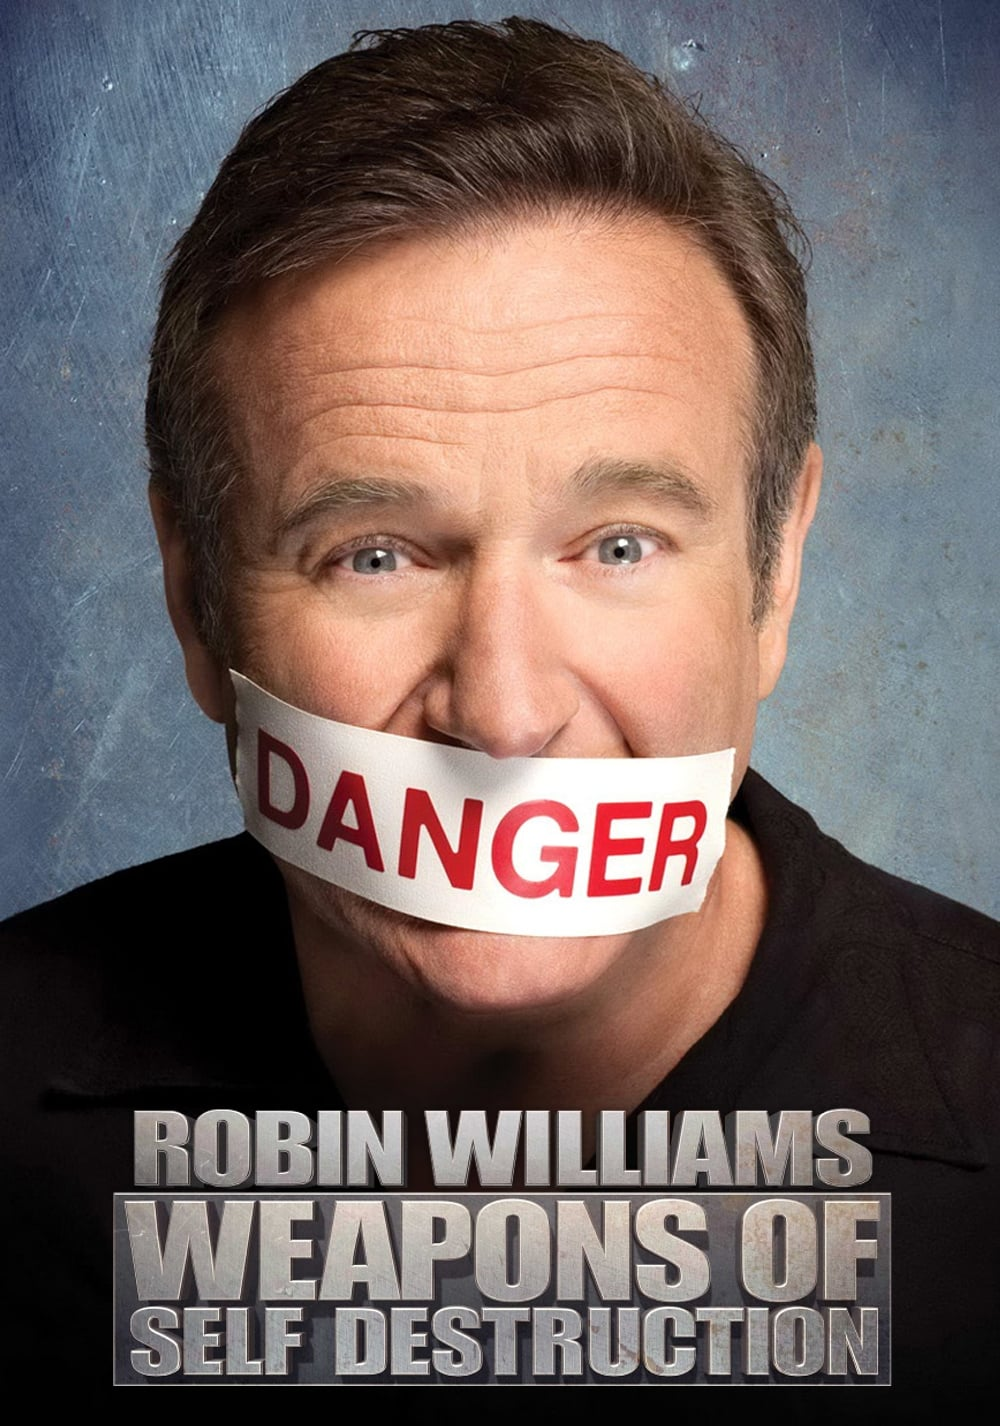 Robin Williams: Weapons of Self-Destruction (1970)